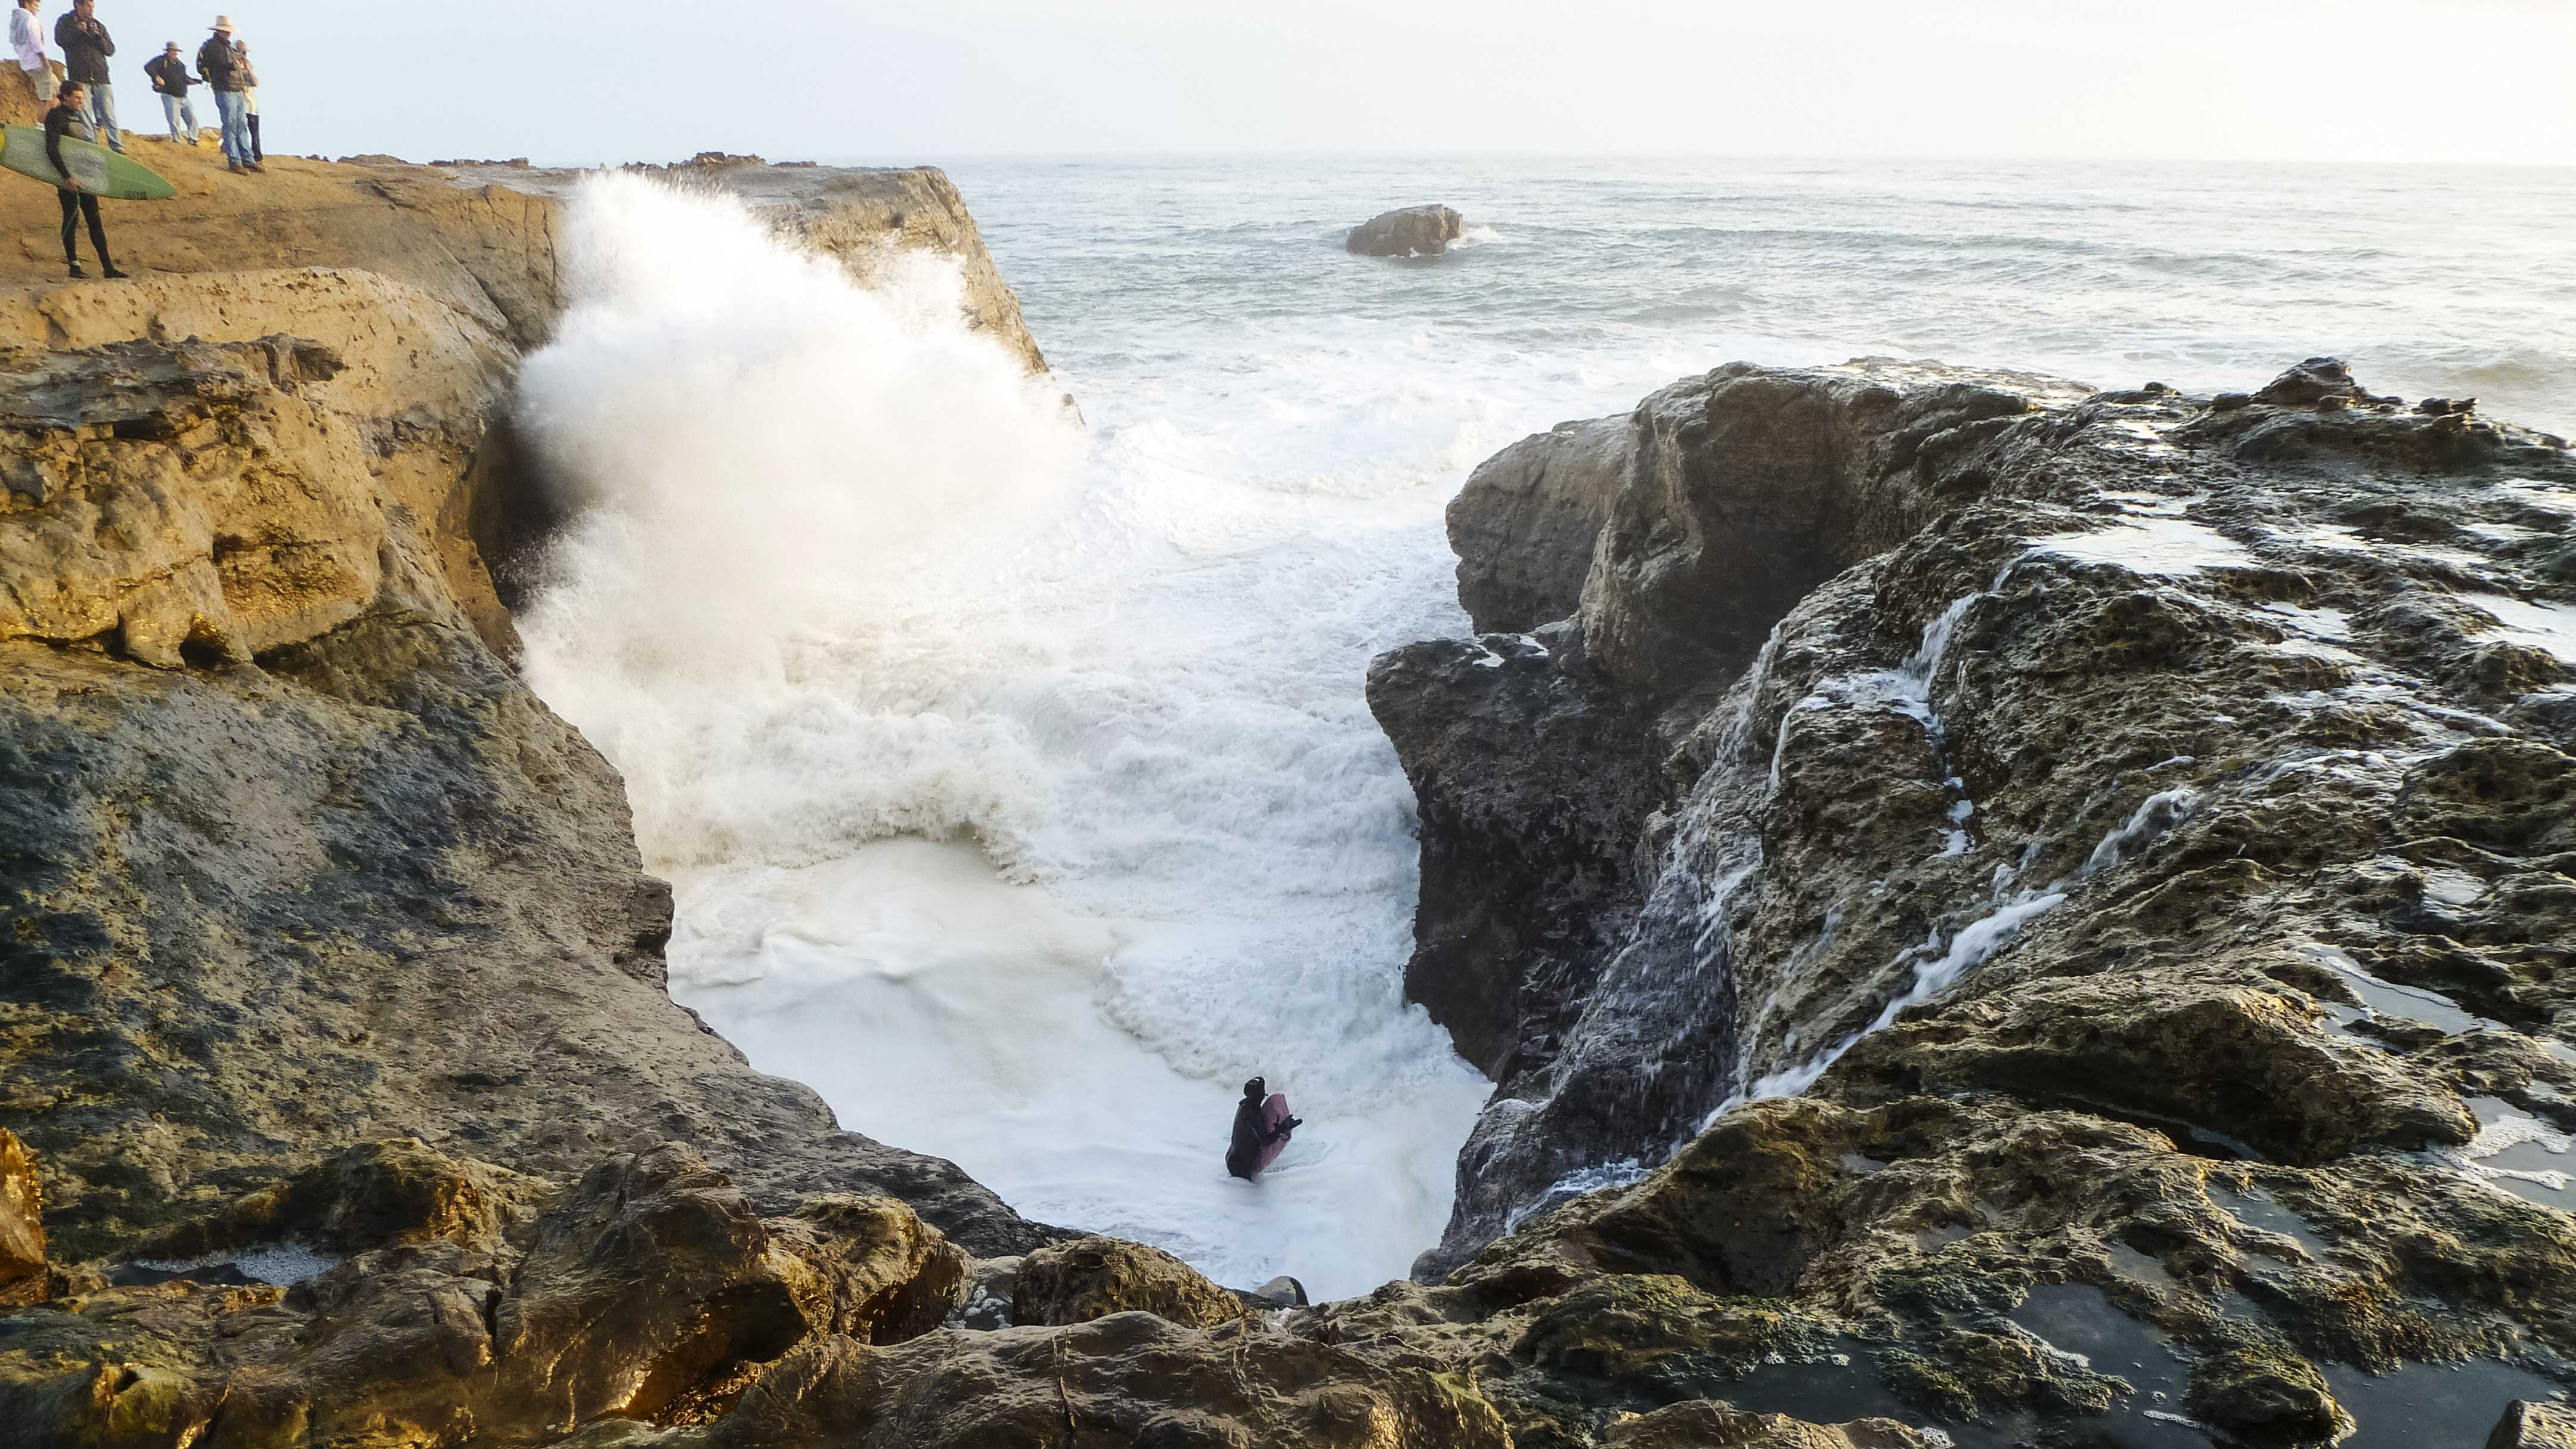 A boogie boarder was sucked into this cove next to Steamer Lane in Santa Cruz. (Jan. 24, 2014)